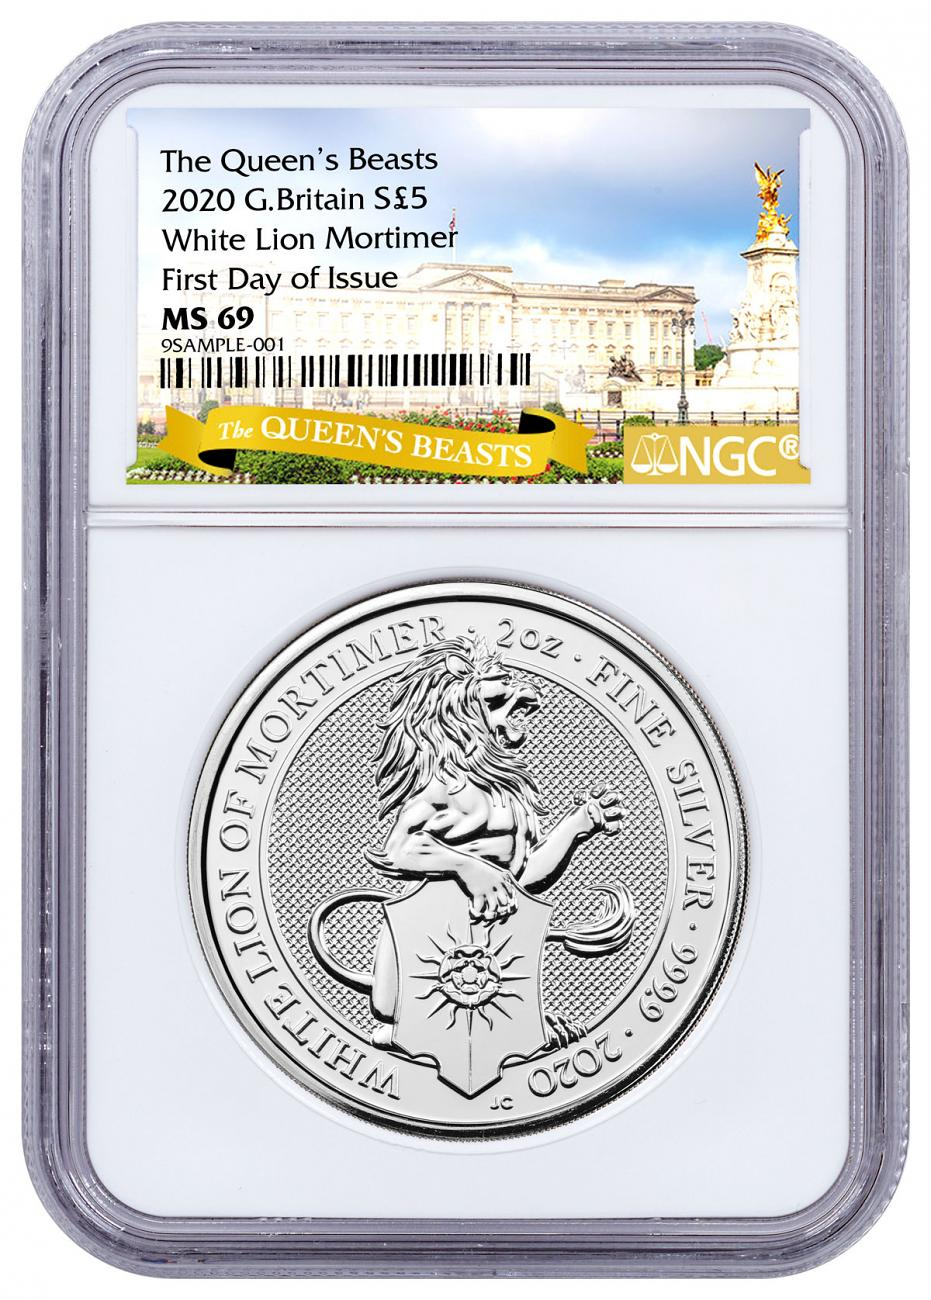 2020 Great Britain 2 oz Silver Queen's Beasts - White Lion of Mortimer £5 Coin NGC MS69 FDI Exclusive Queen's Beasts Label